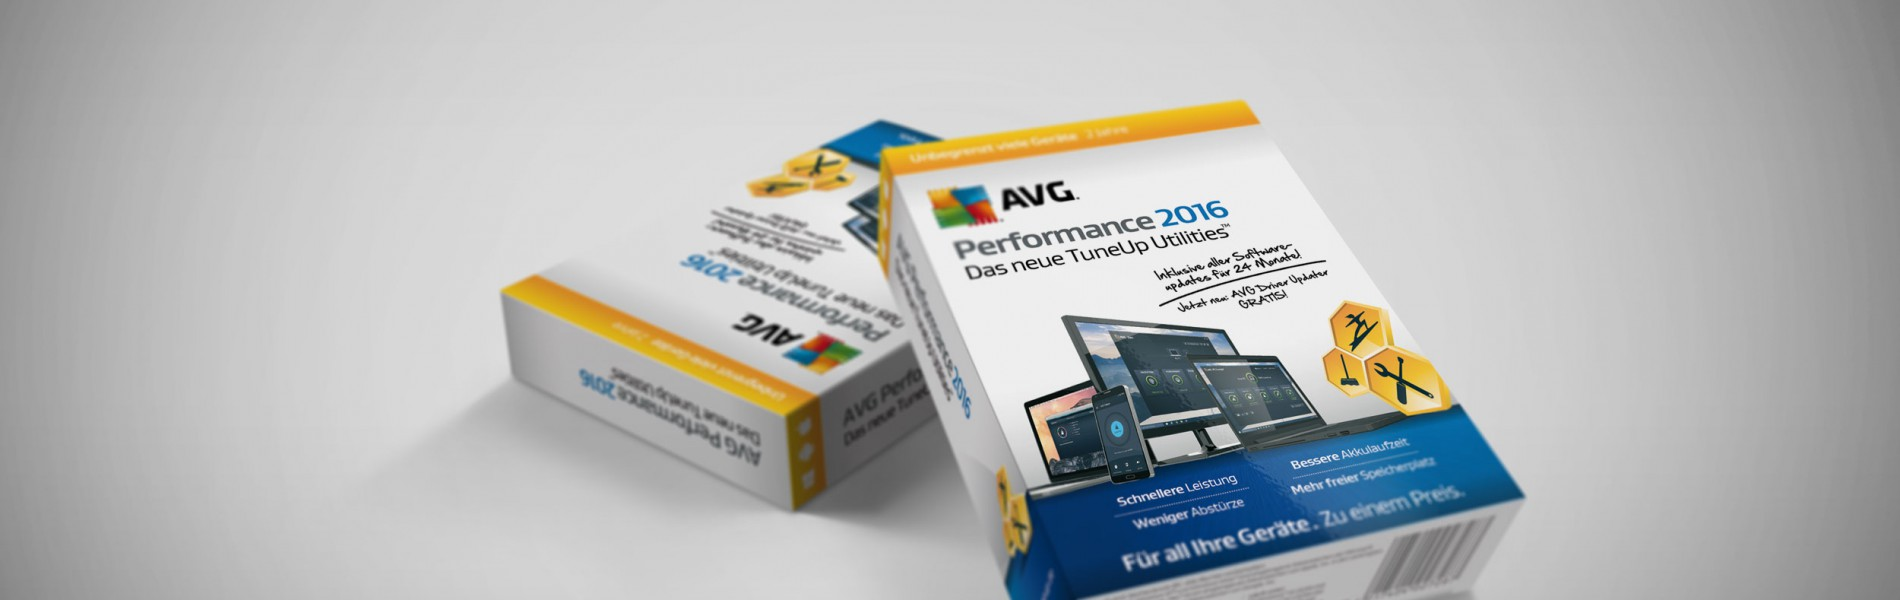 AVG Performance 2016